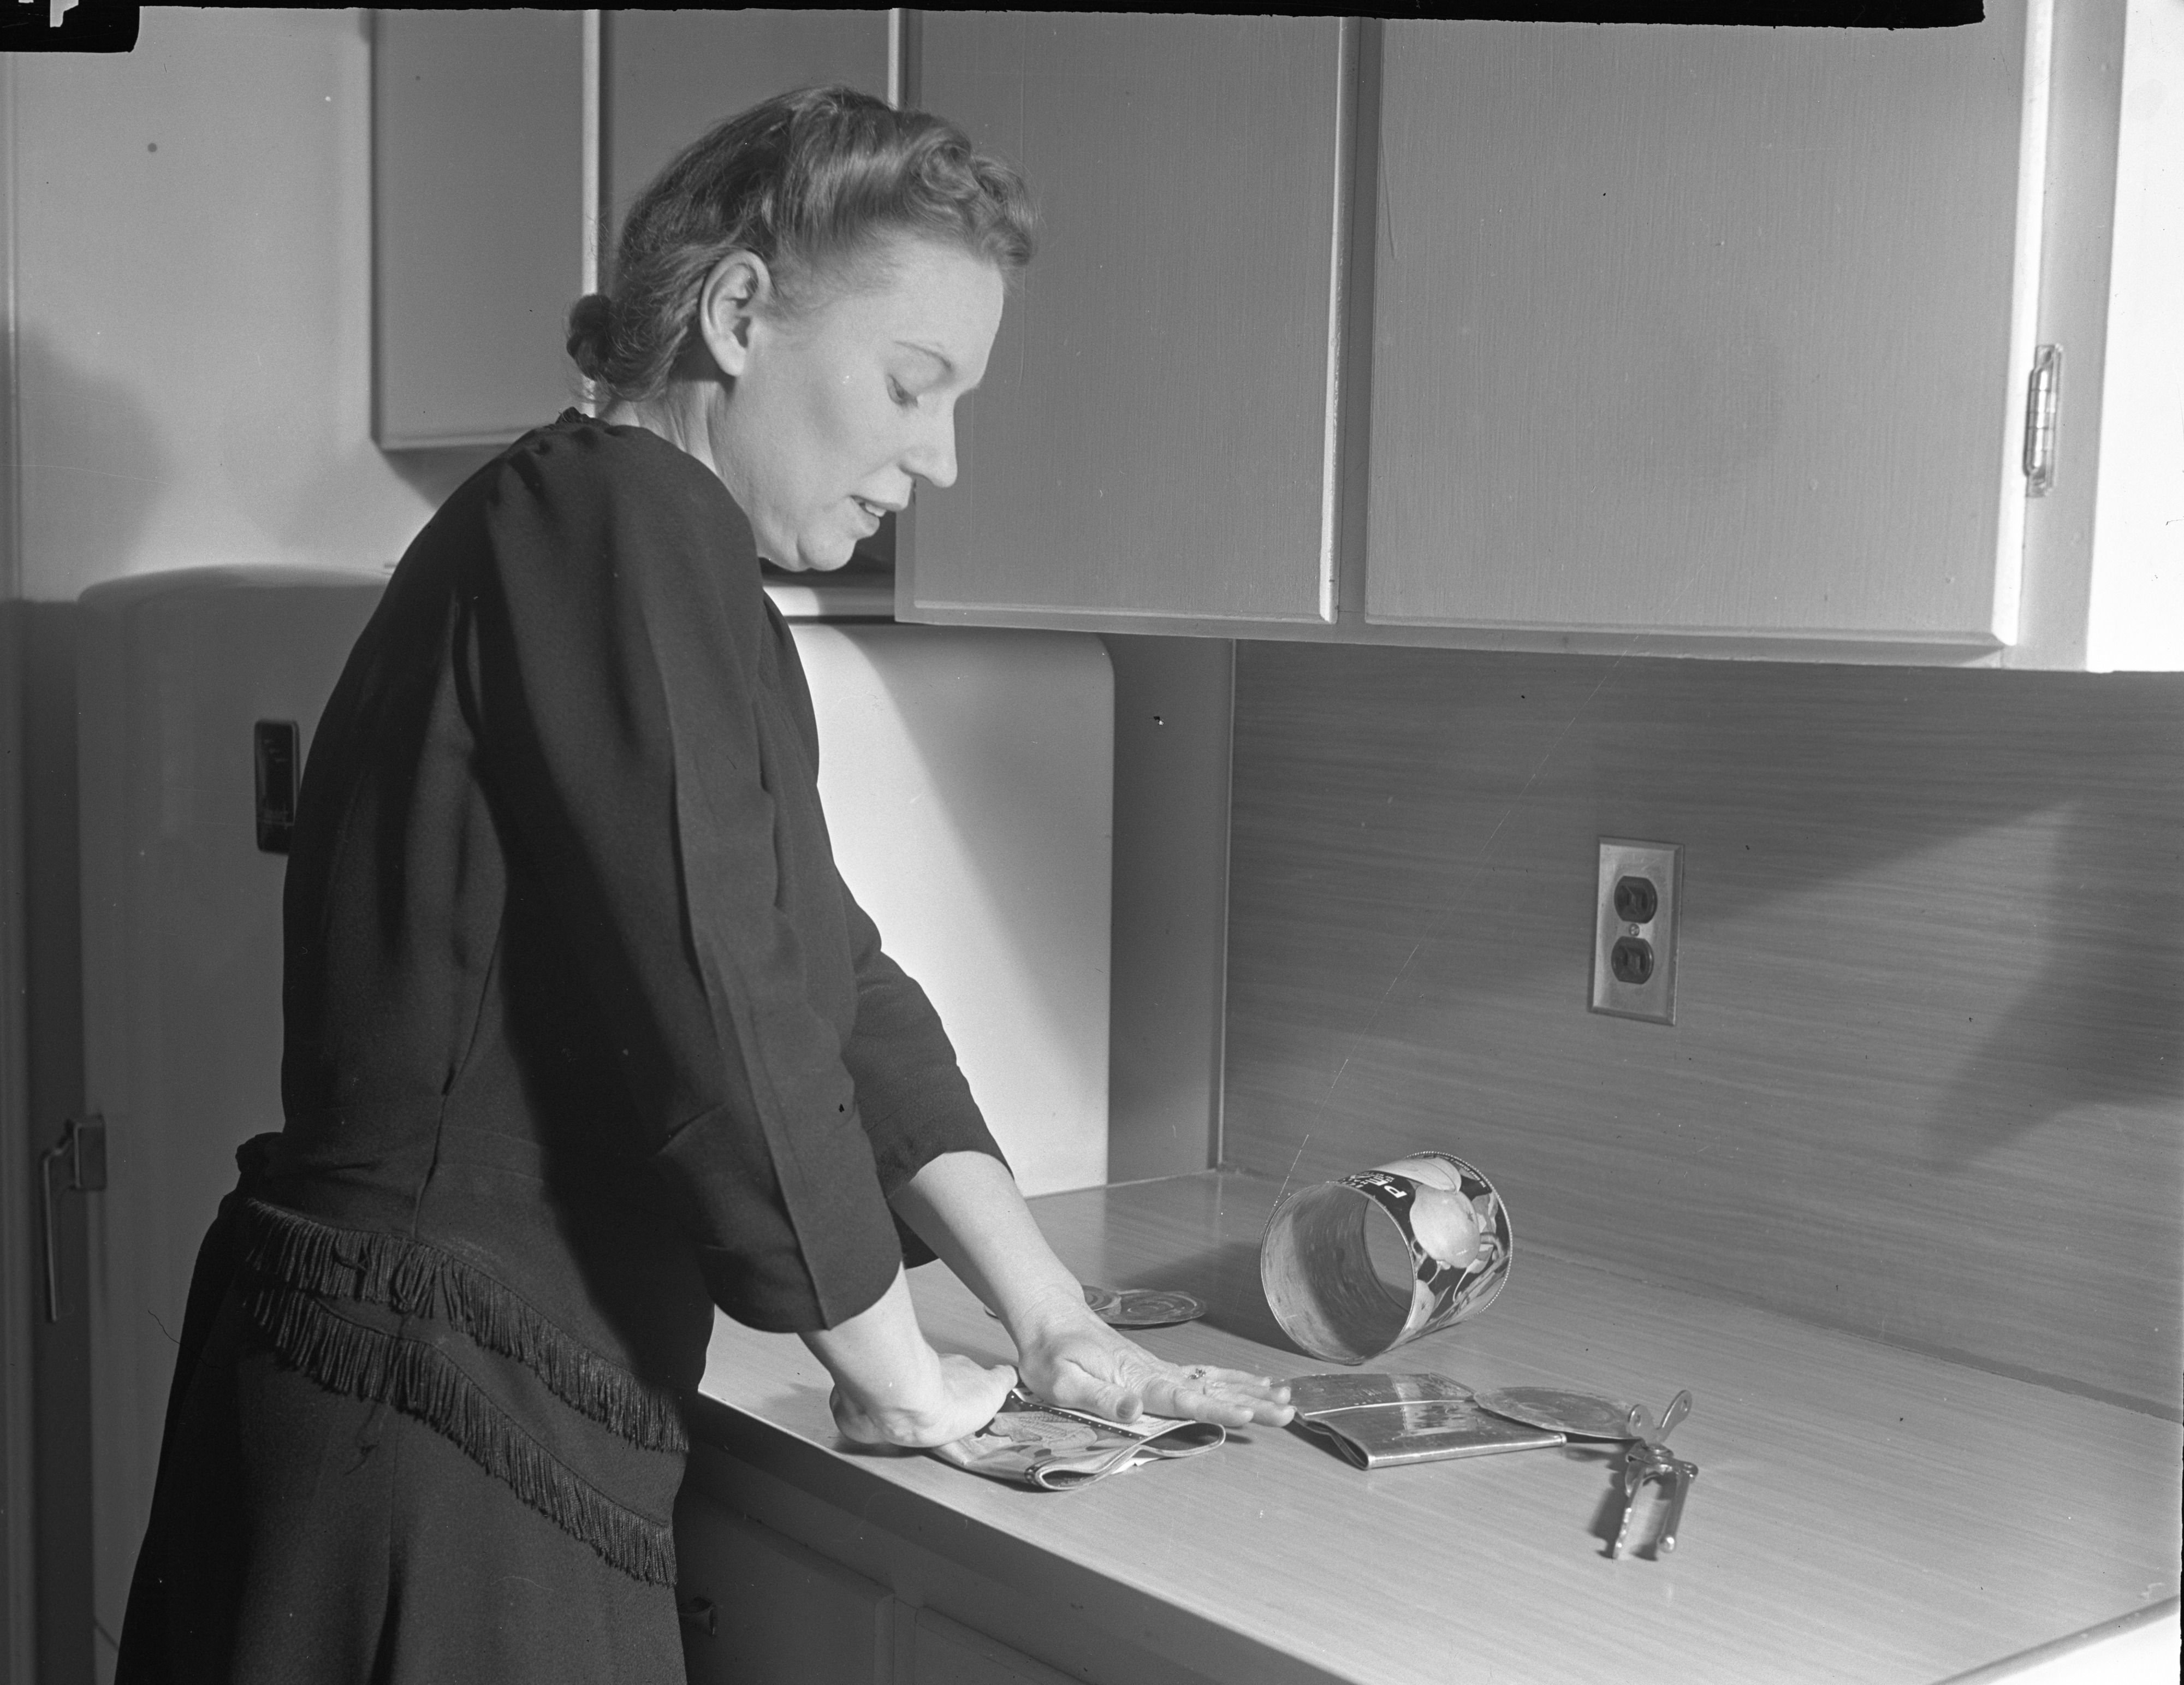 Tin Can Salvage demonstrated by Sally Rezny, April 1942 image